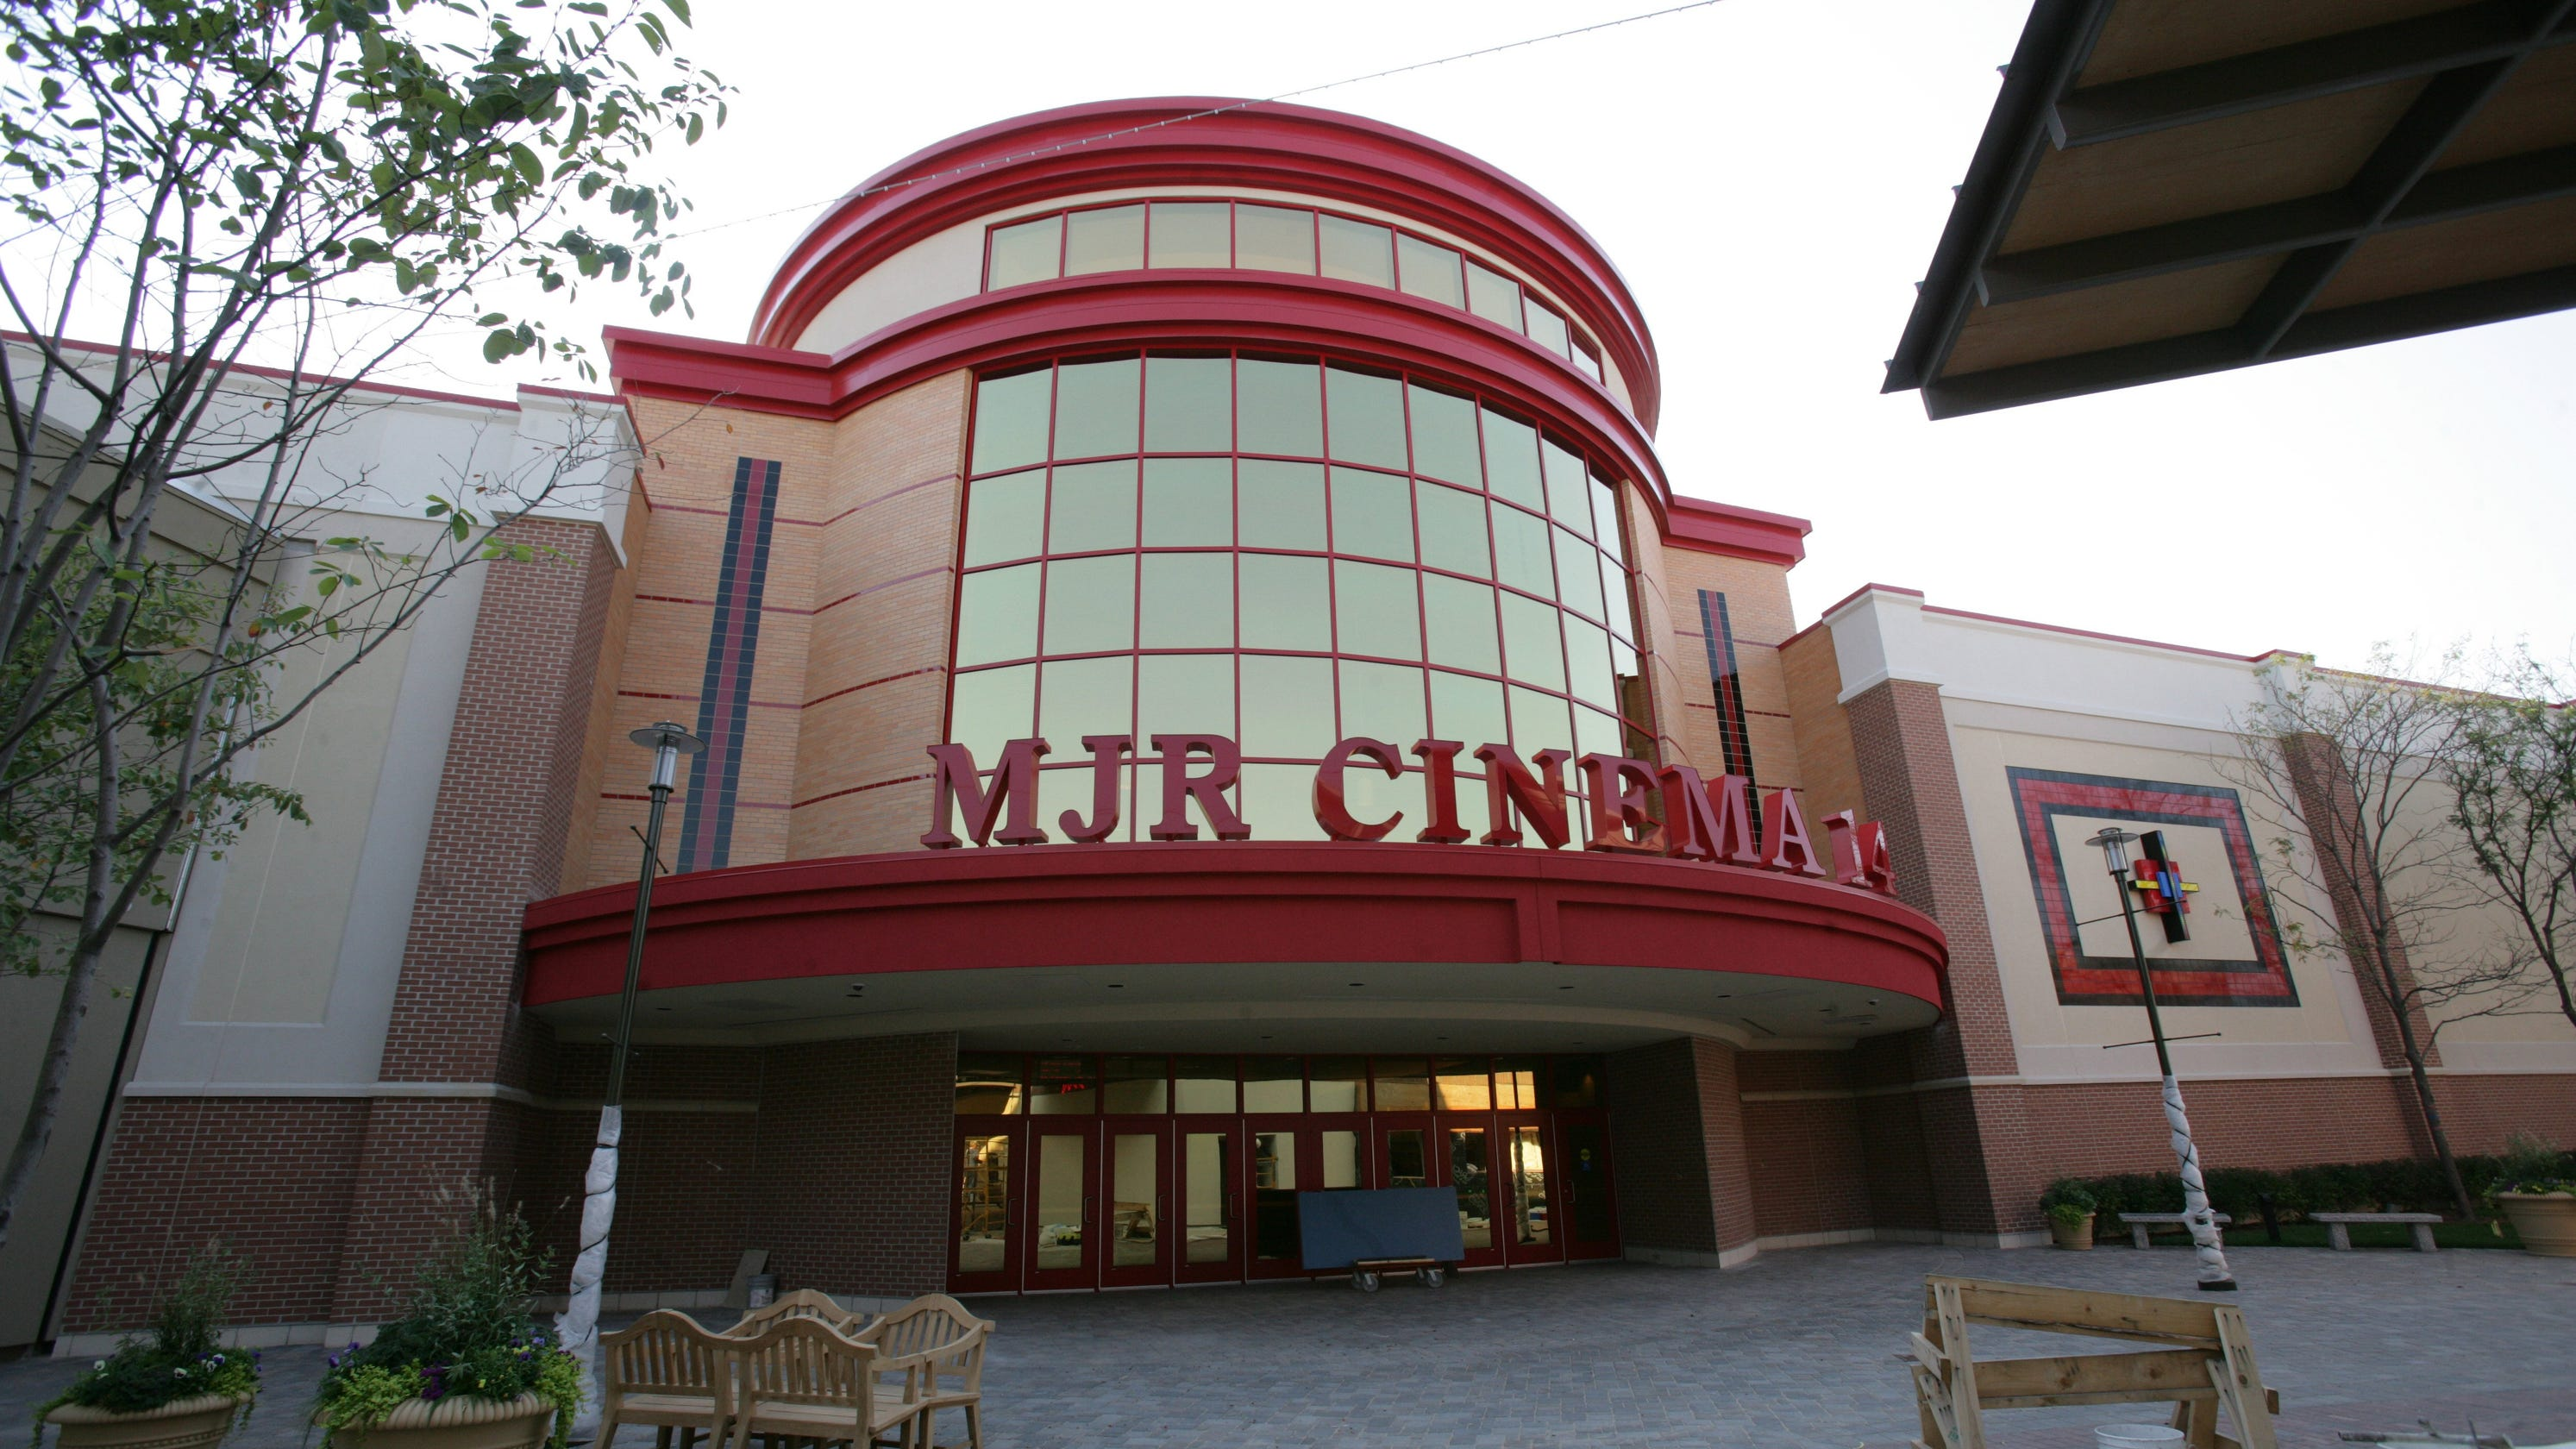 MJR Digital Cinemas bought by European company, will keep name